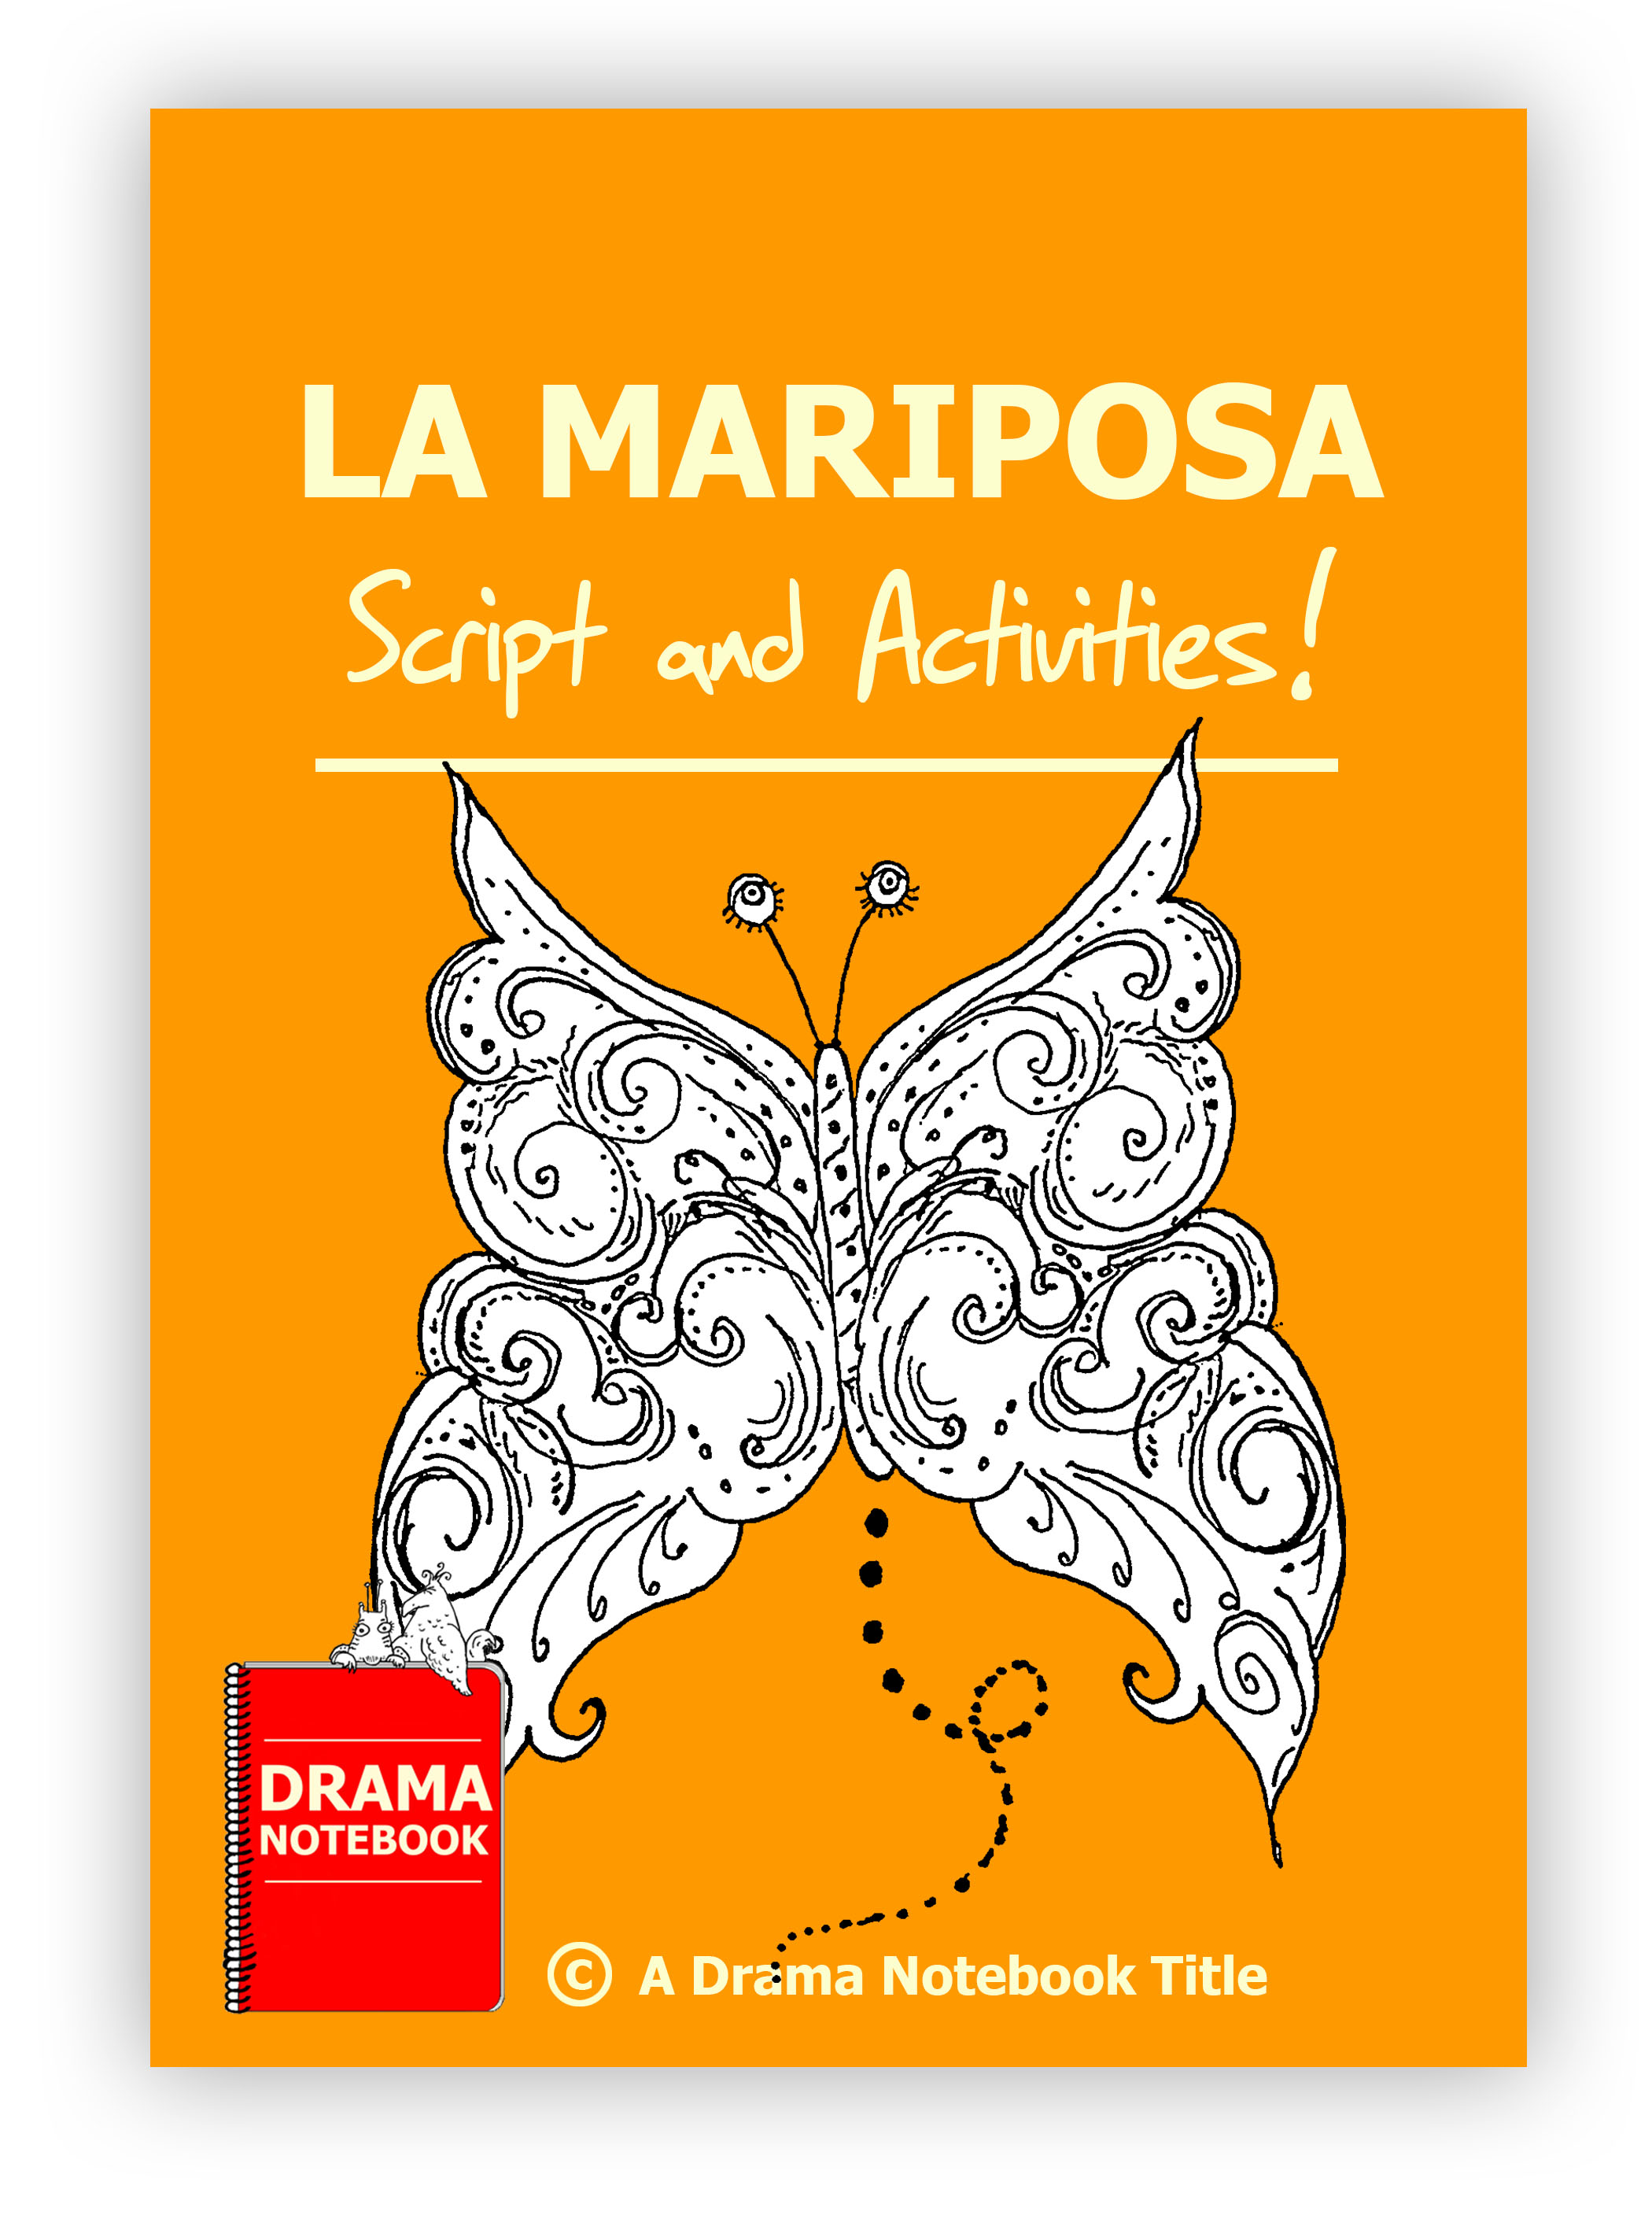 La Mariposa Script and Activities